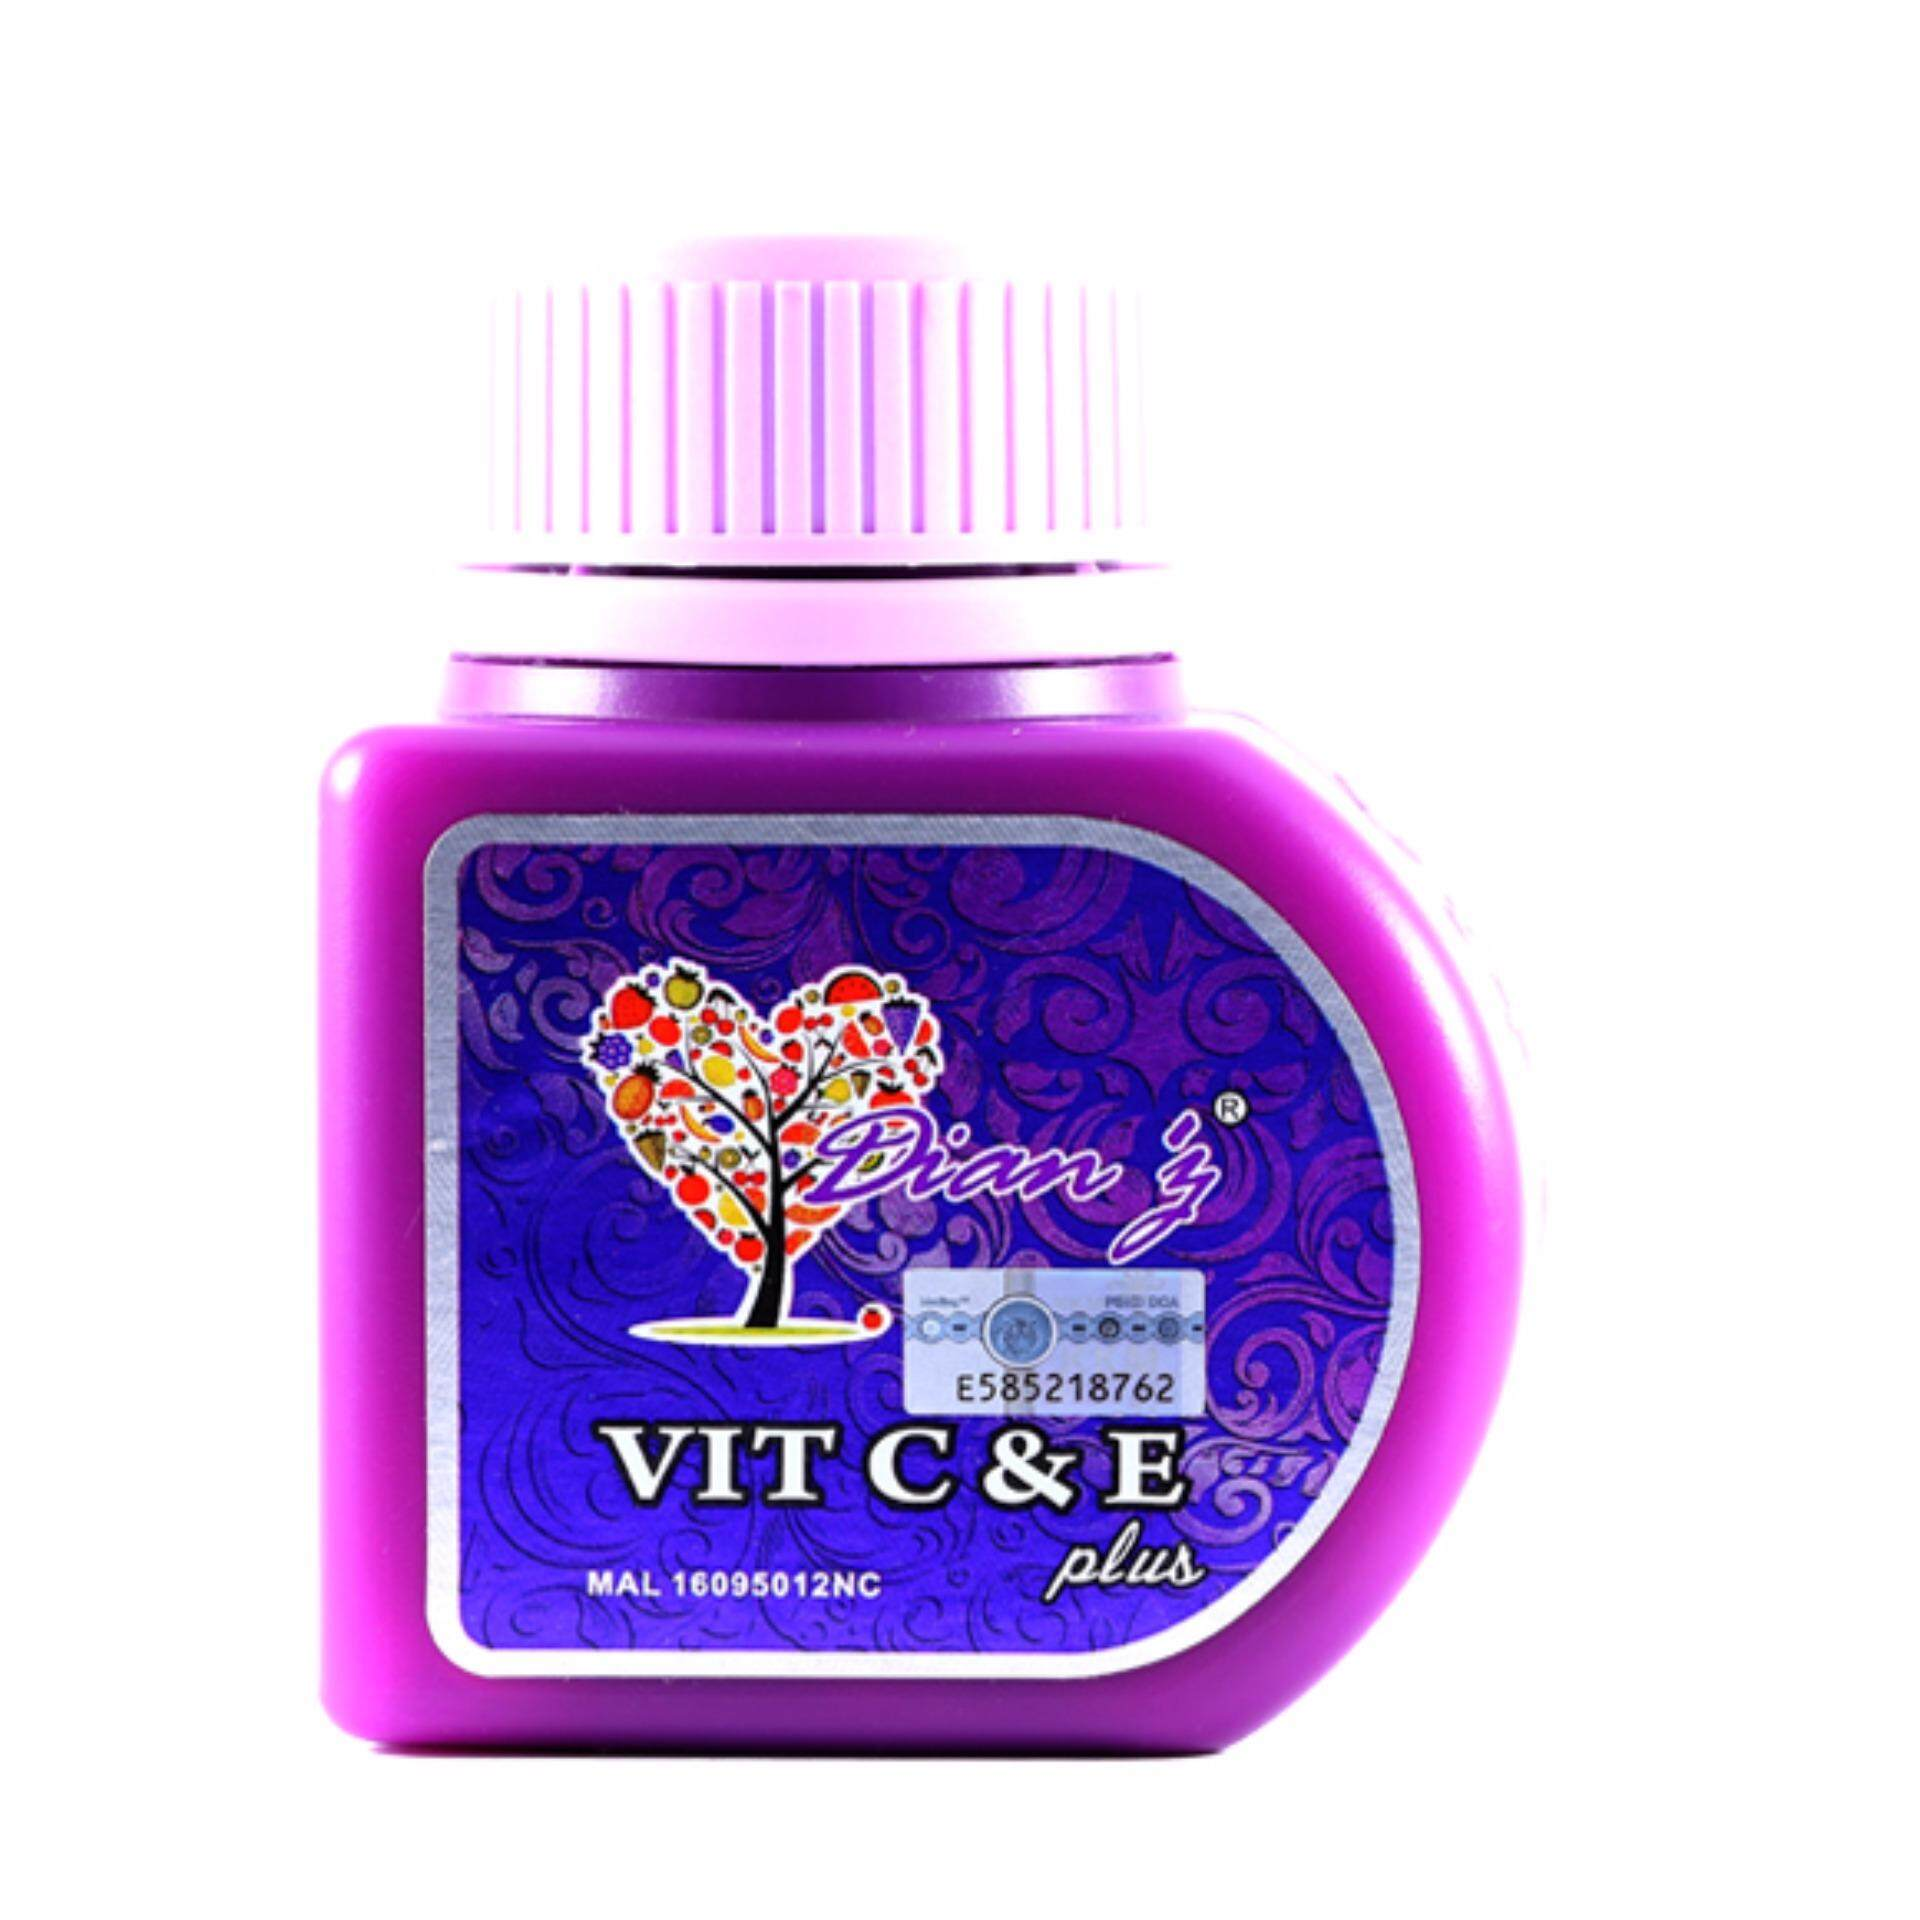 Whitening Reviews Ratings And Best Price In Kl Selangor Glutax 23000gk Original Dianz Vitamin C E Plus With Qr Code Free Gift